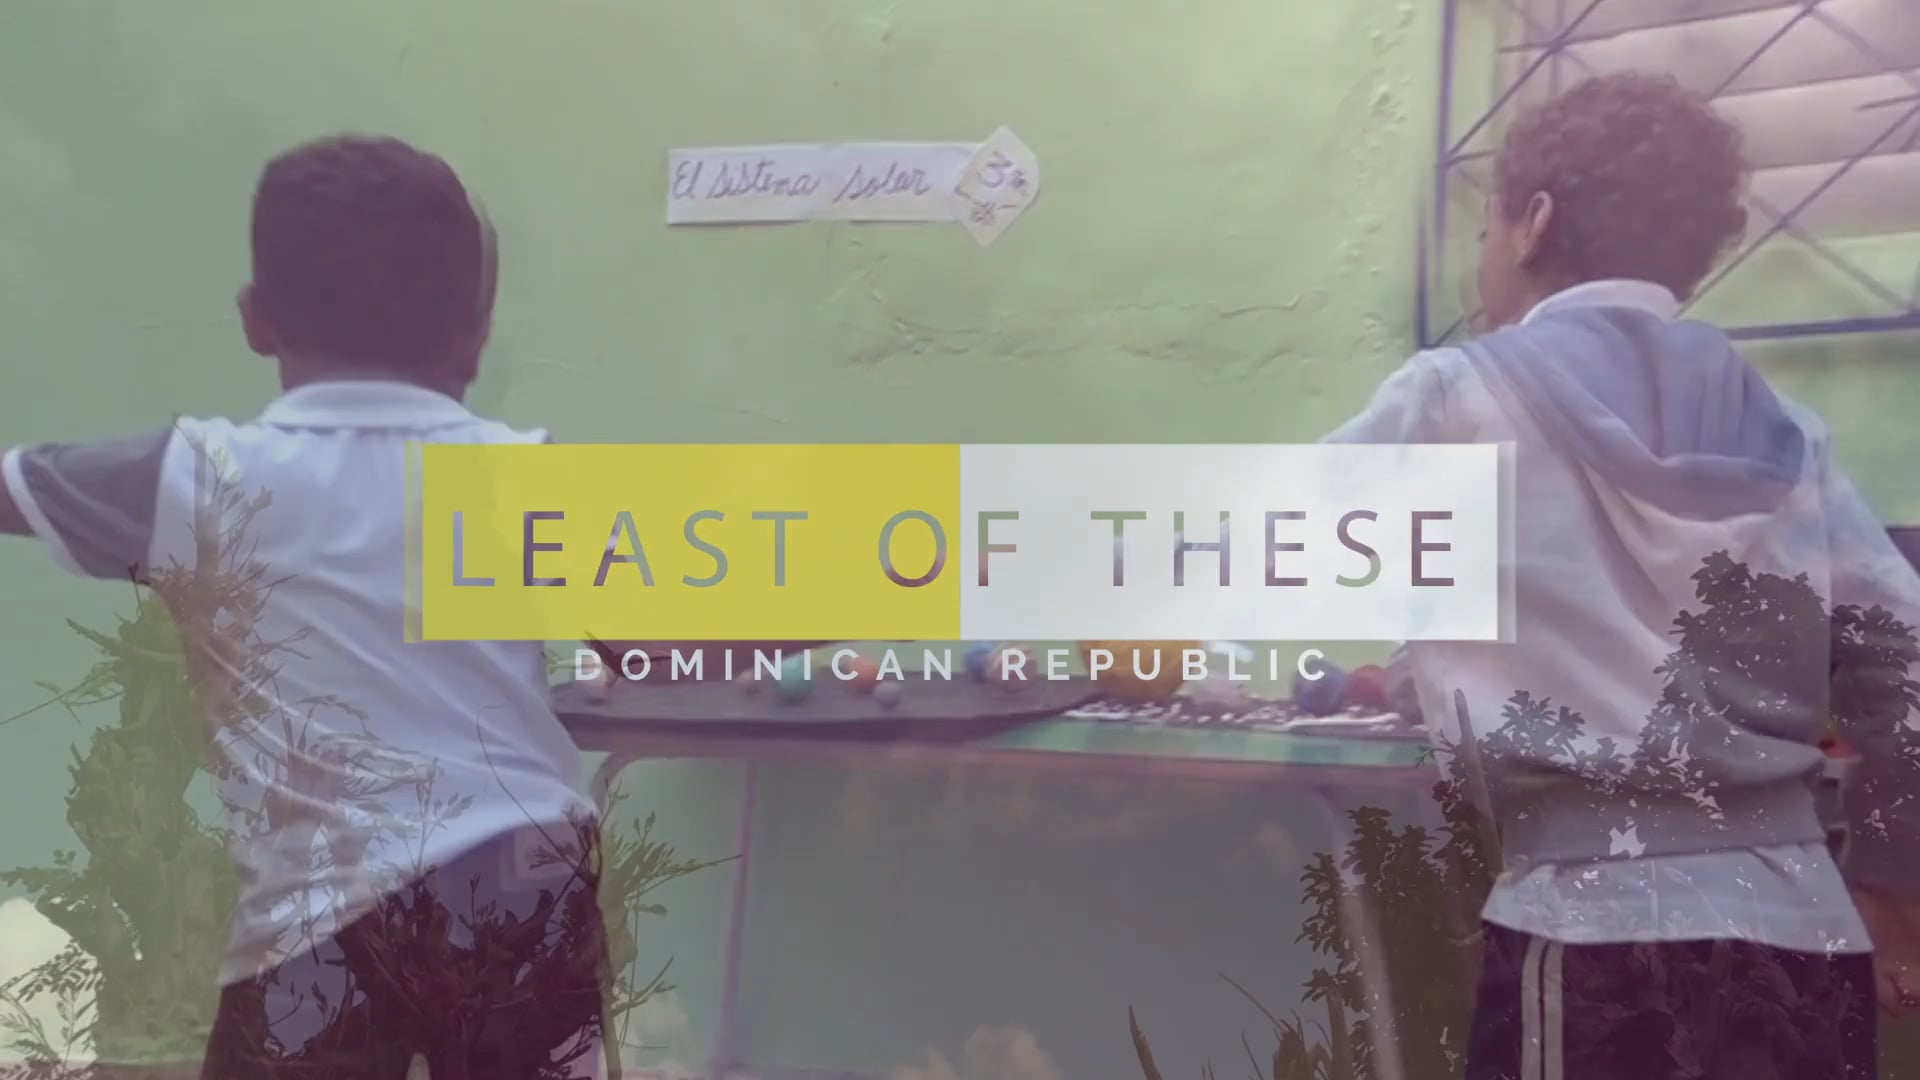 The Least of These - Opportunity International Canada